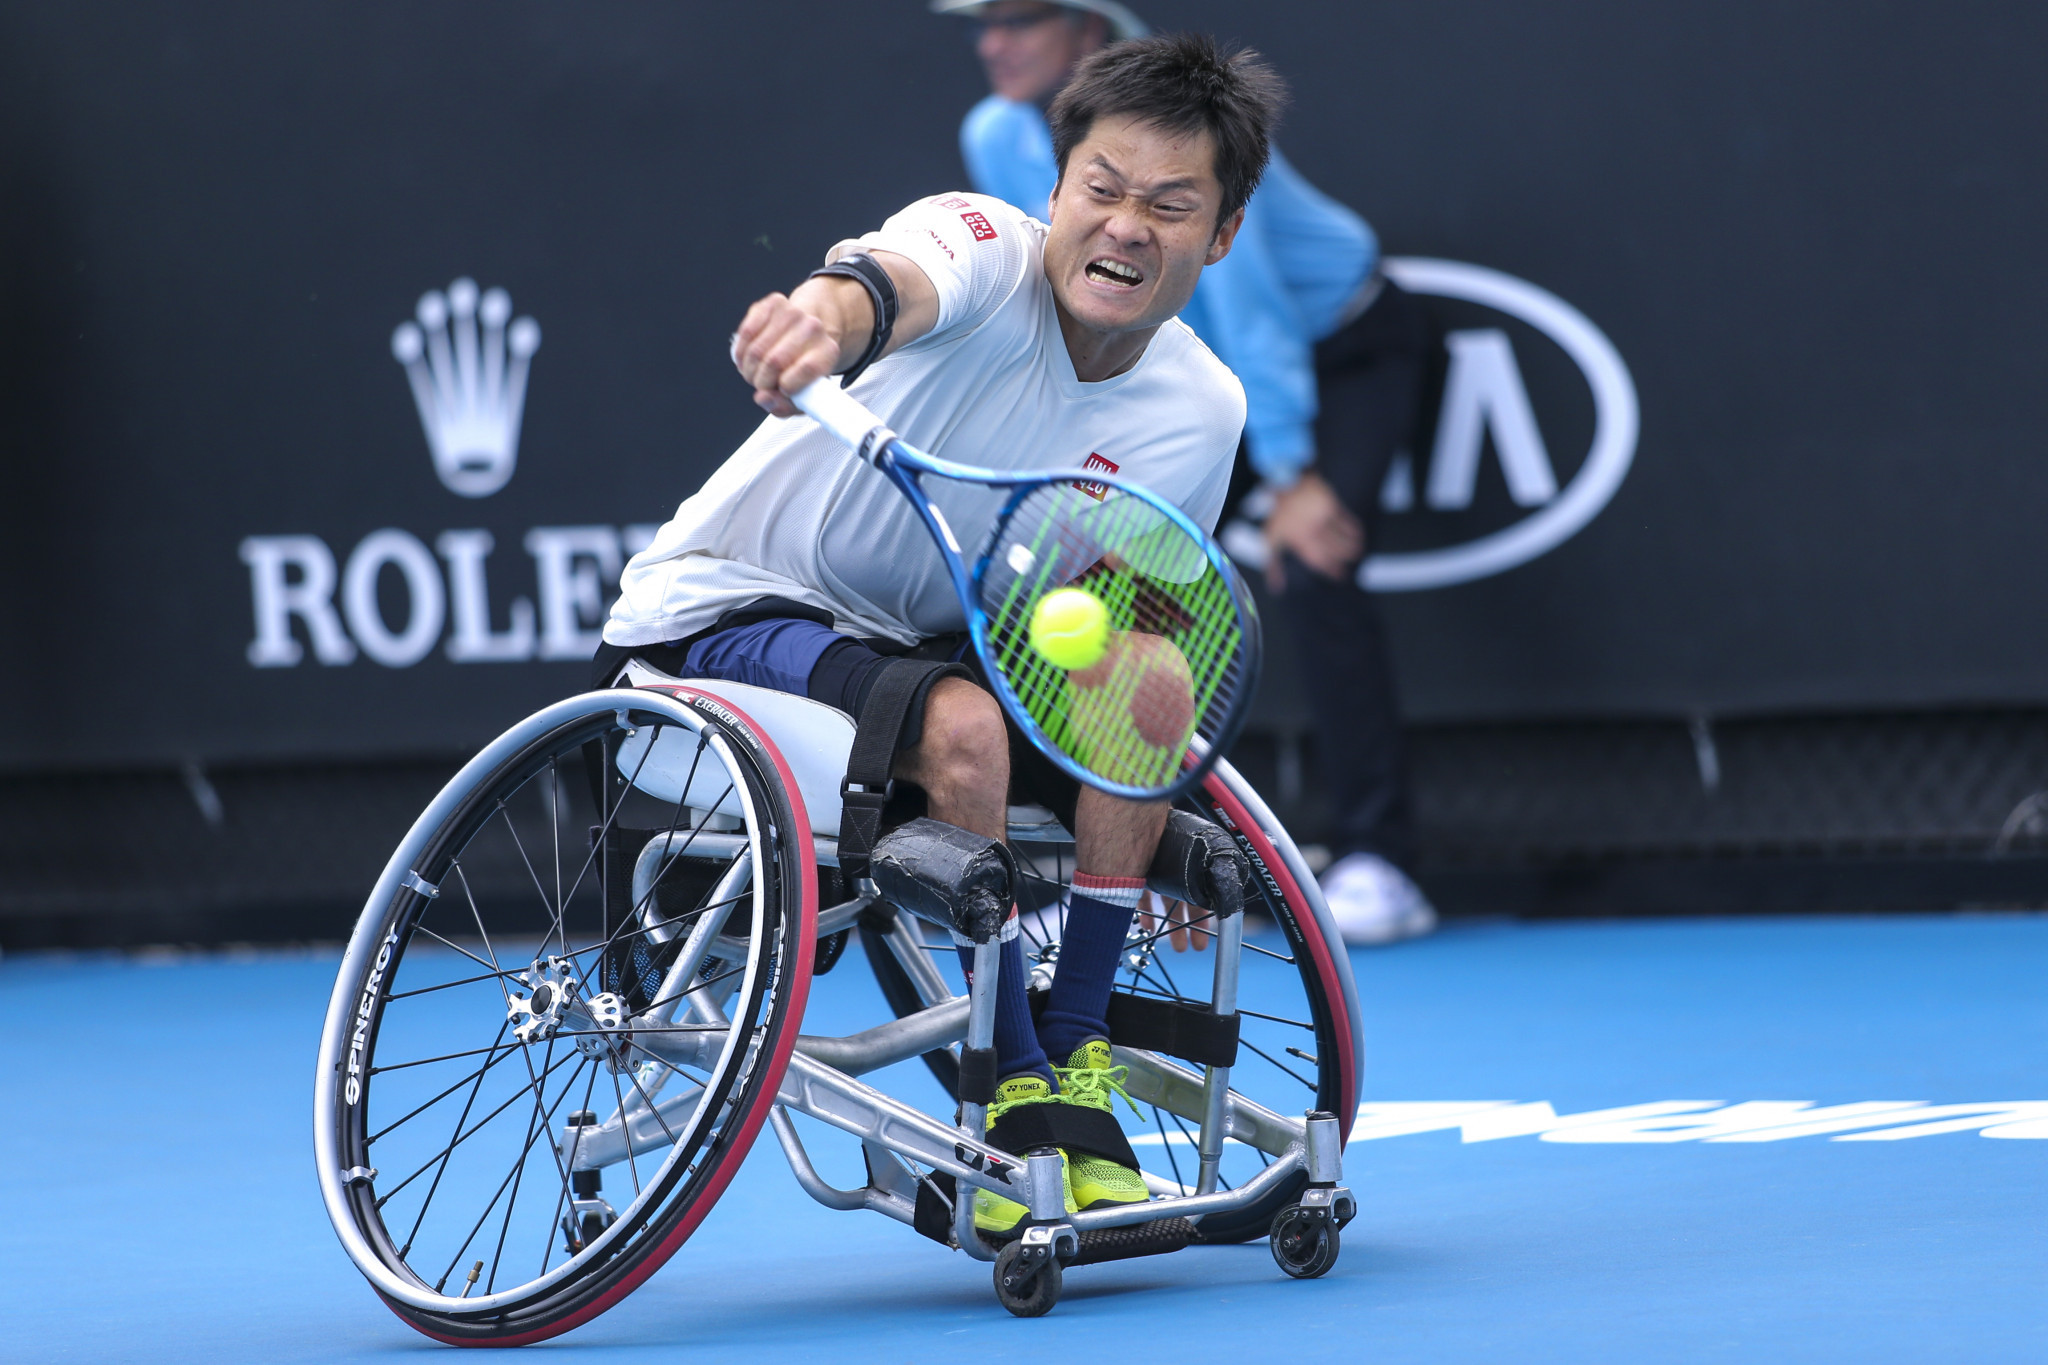 Japan's wheelchair tennis star Shingo Kunieda placed second in the public vote ©Getty Images